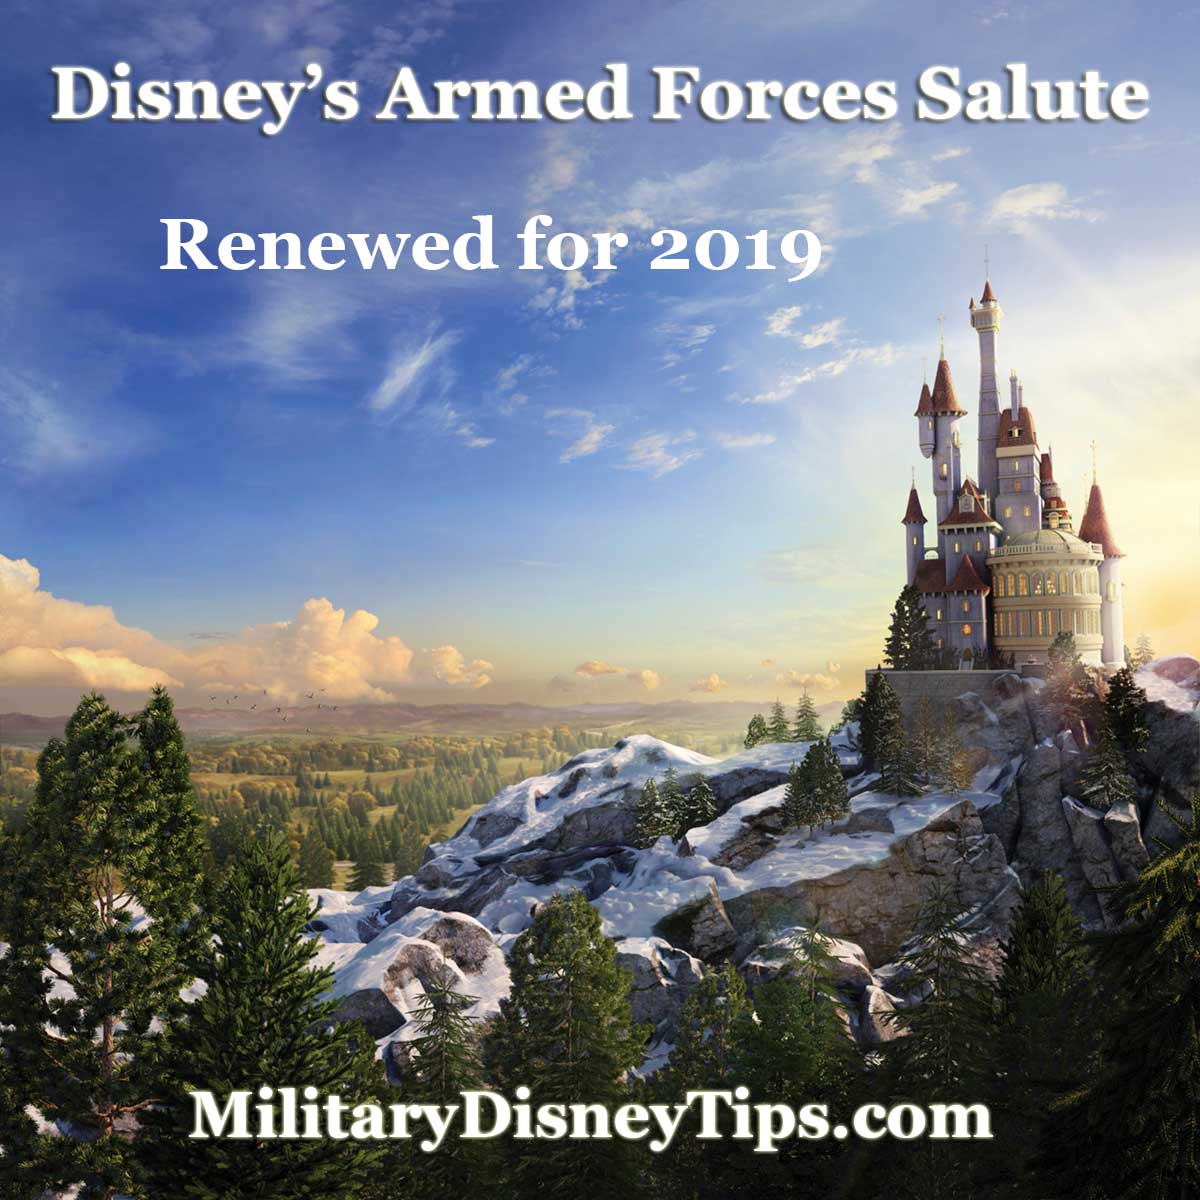 2019 Disney Armed Forces Salute Renewal Announced